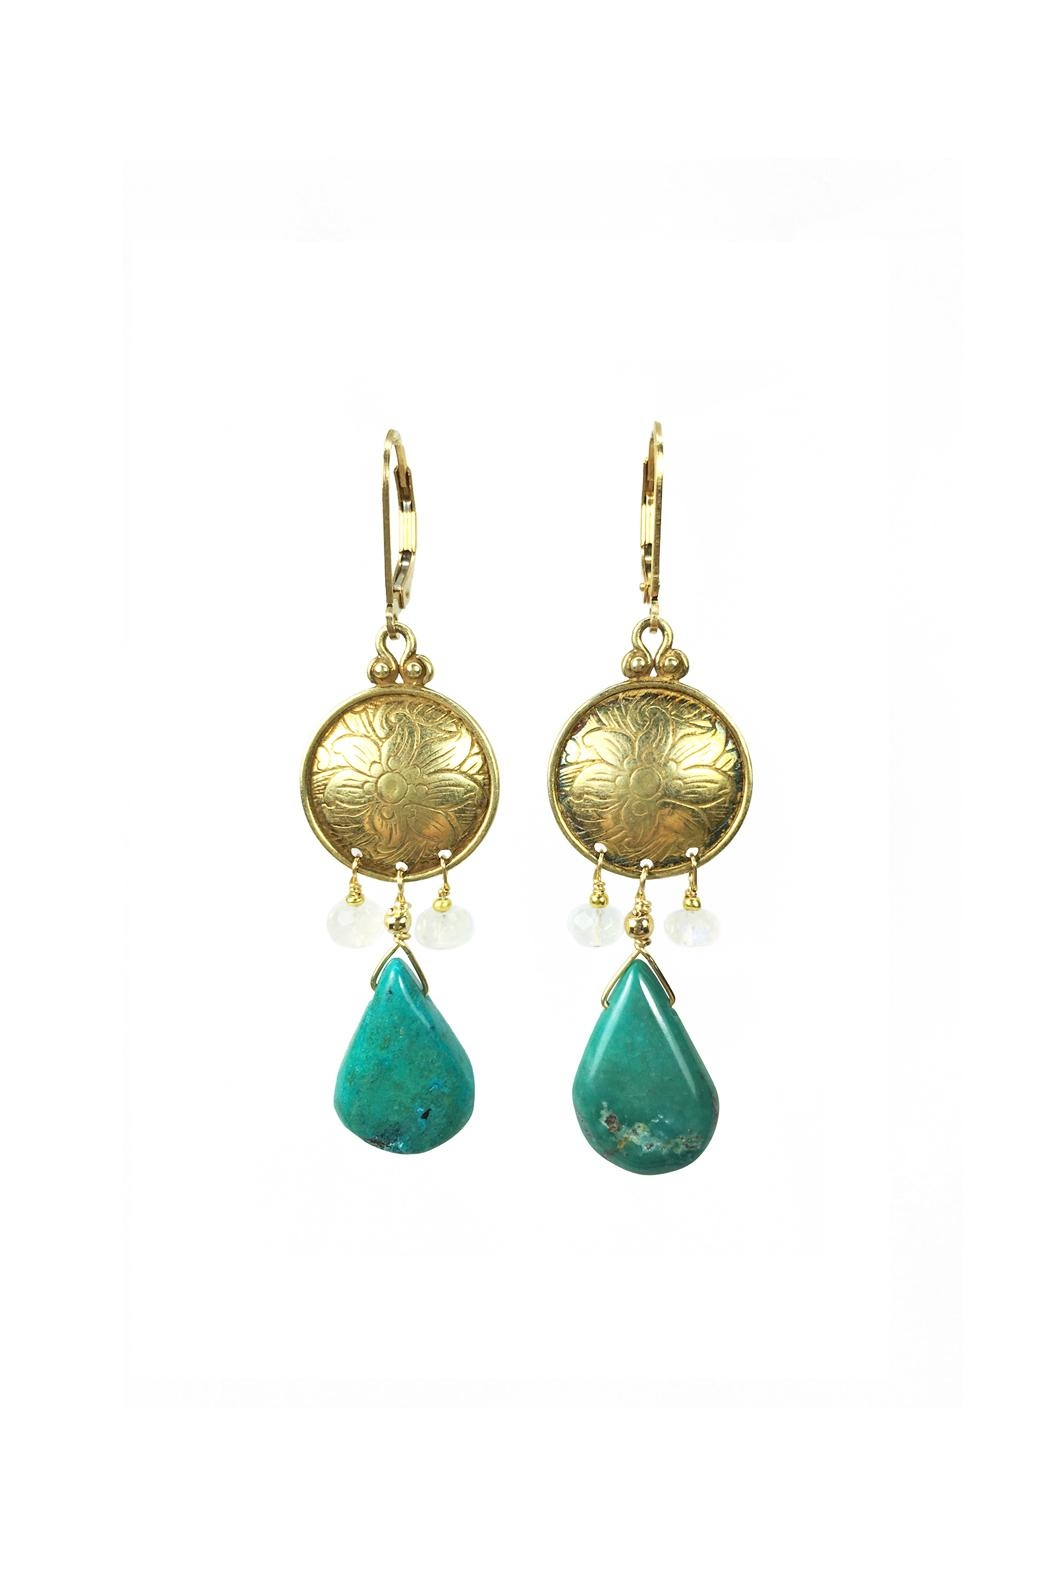 Melinda Lawton Jewelry Turquoise Moonstone Earrings - Main Image